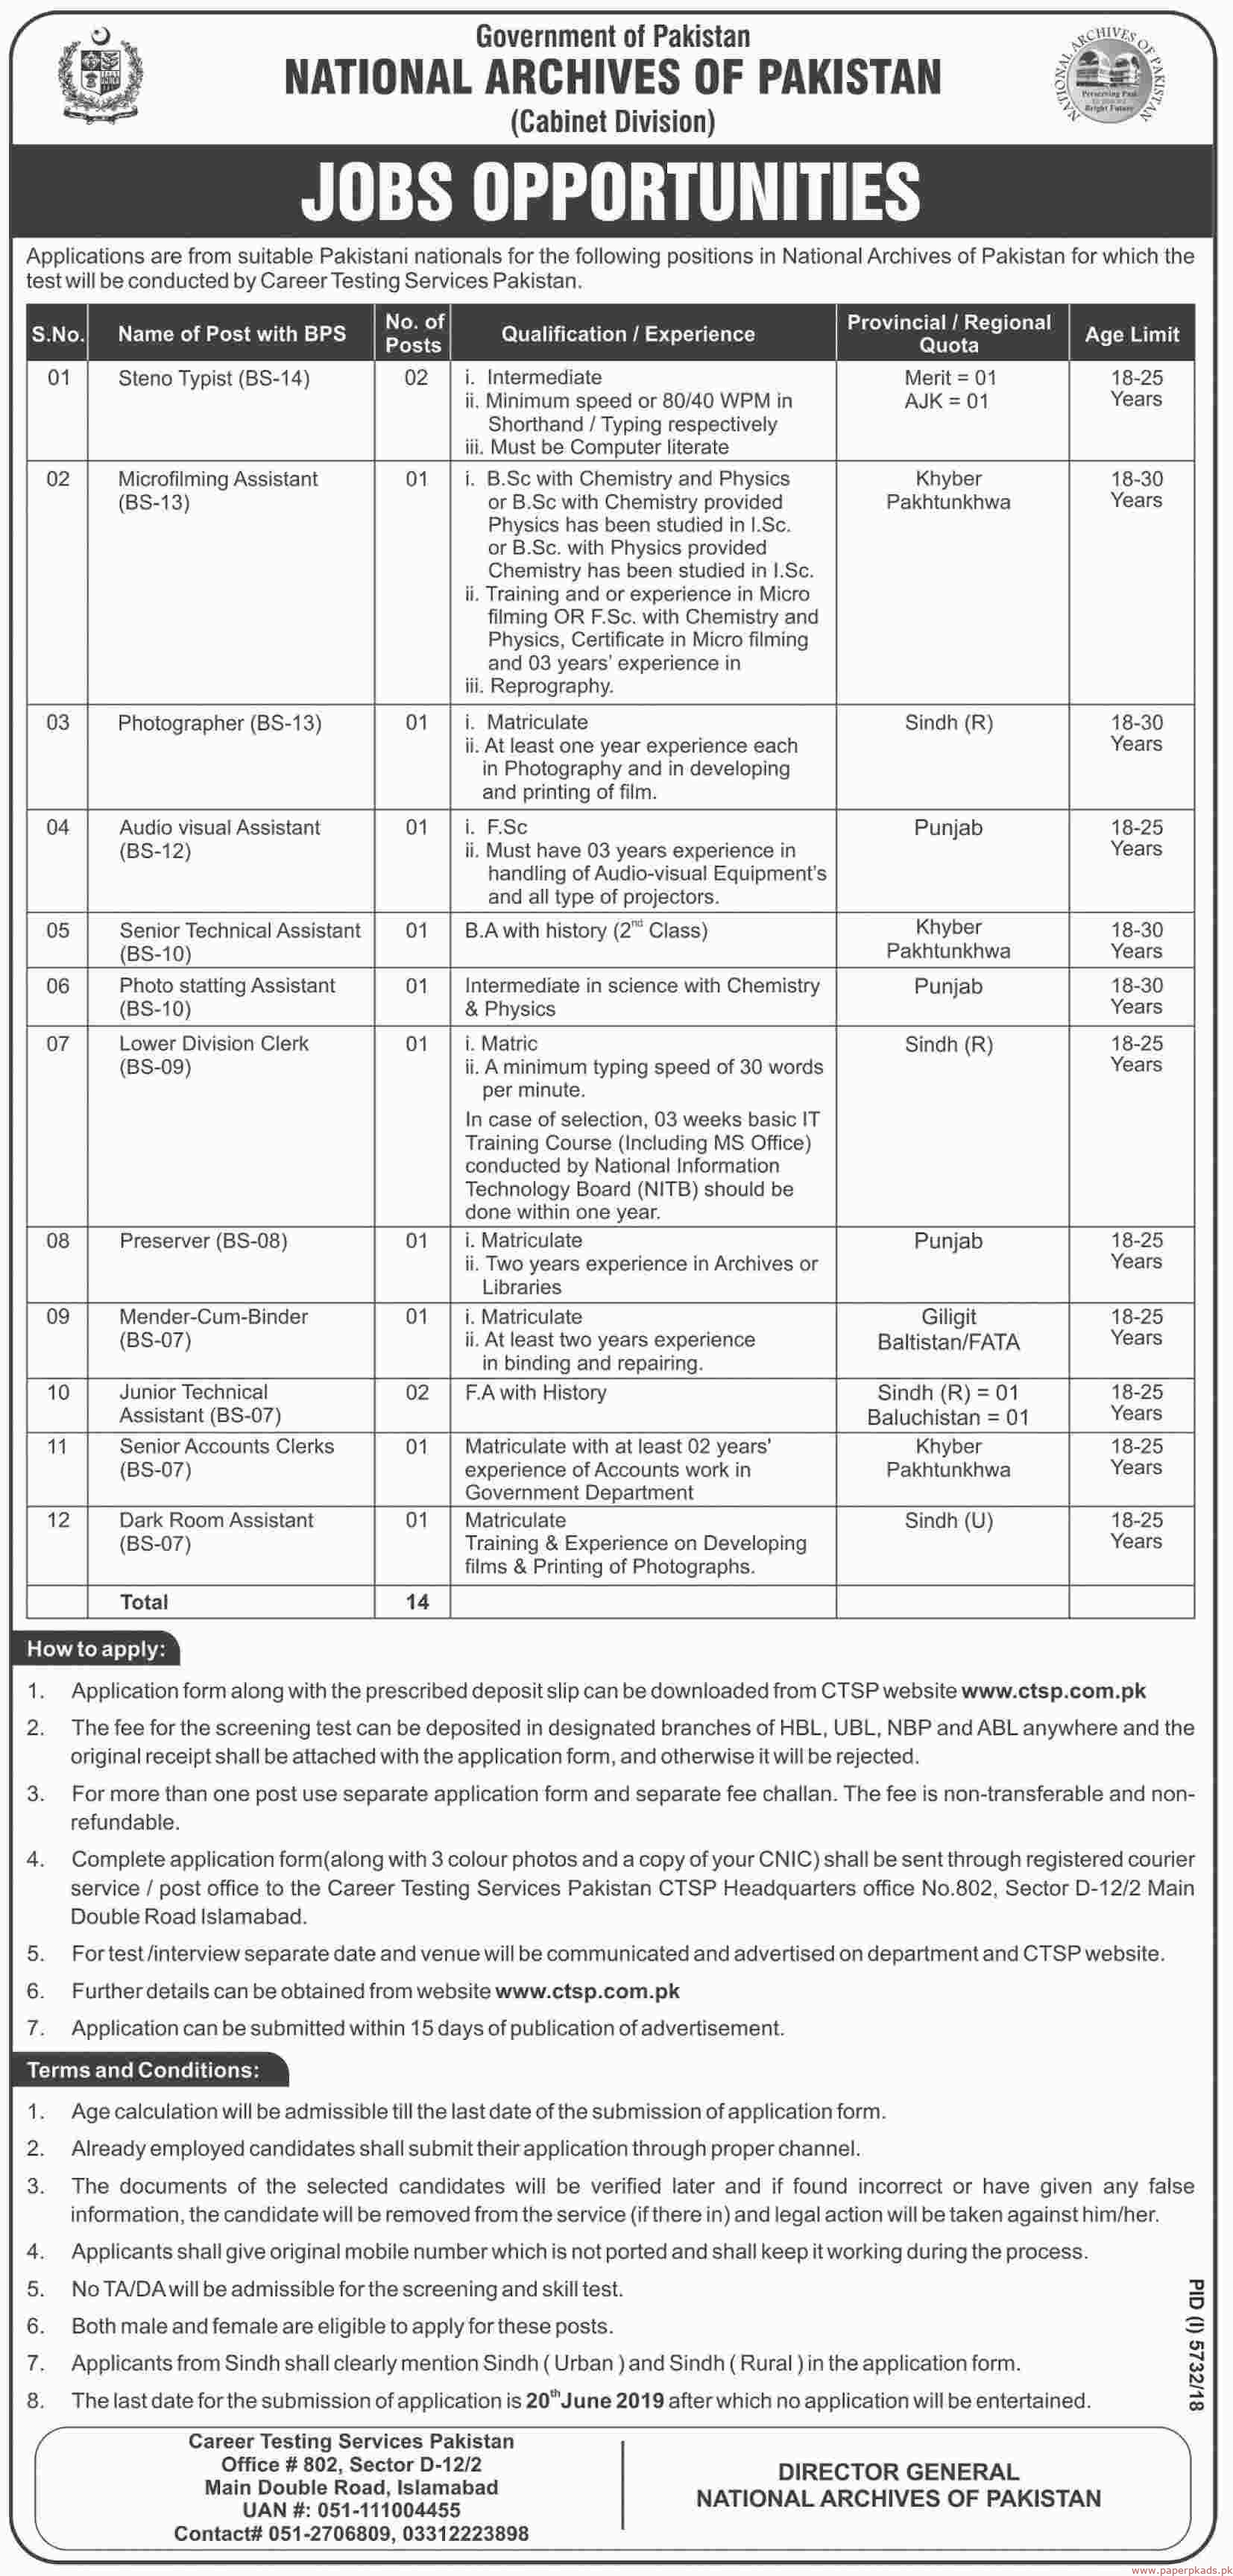 Government of Pakistan - National Archives of Pakistan Jobs 2019 Latest